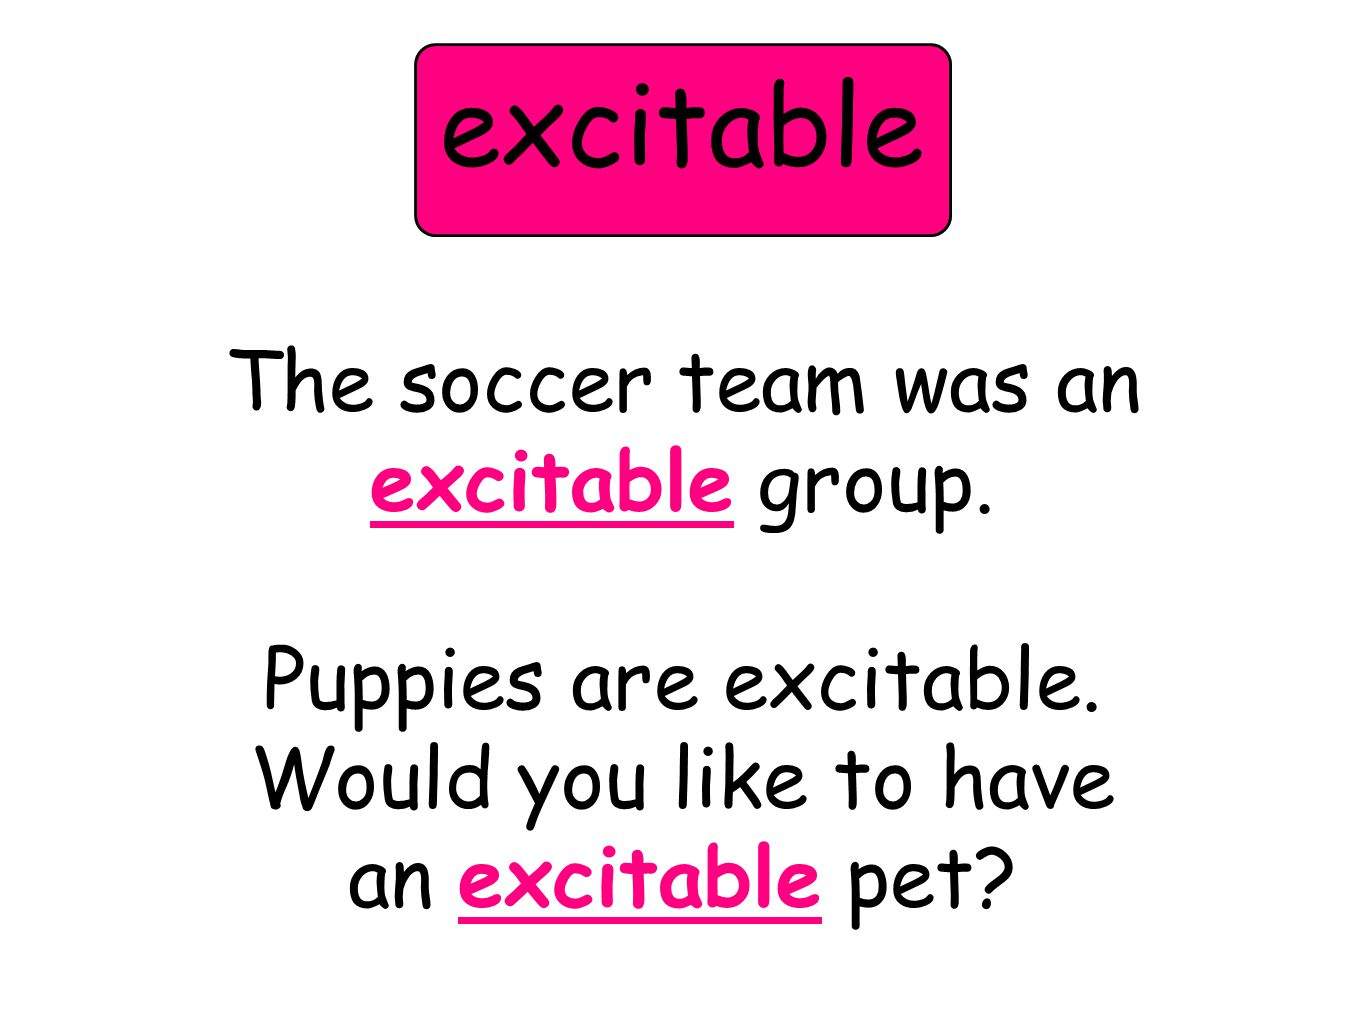 The soccer team was an excitable group. Puppies are excitable. Would you like to have an excitable pet? excitable